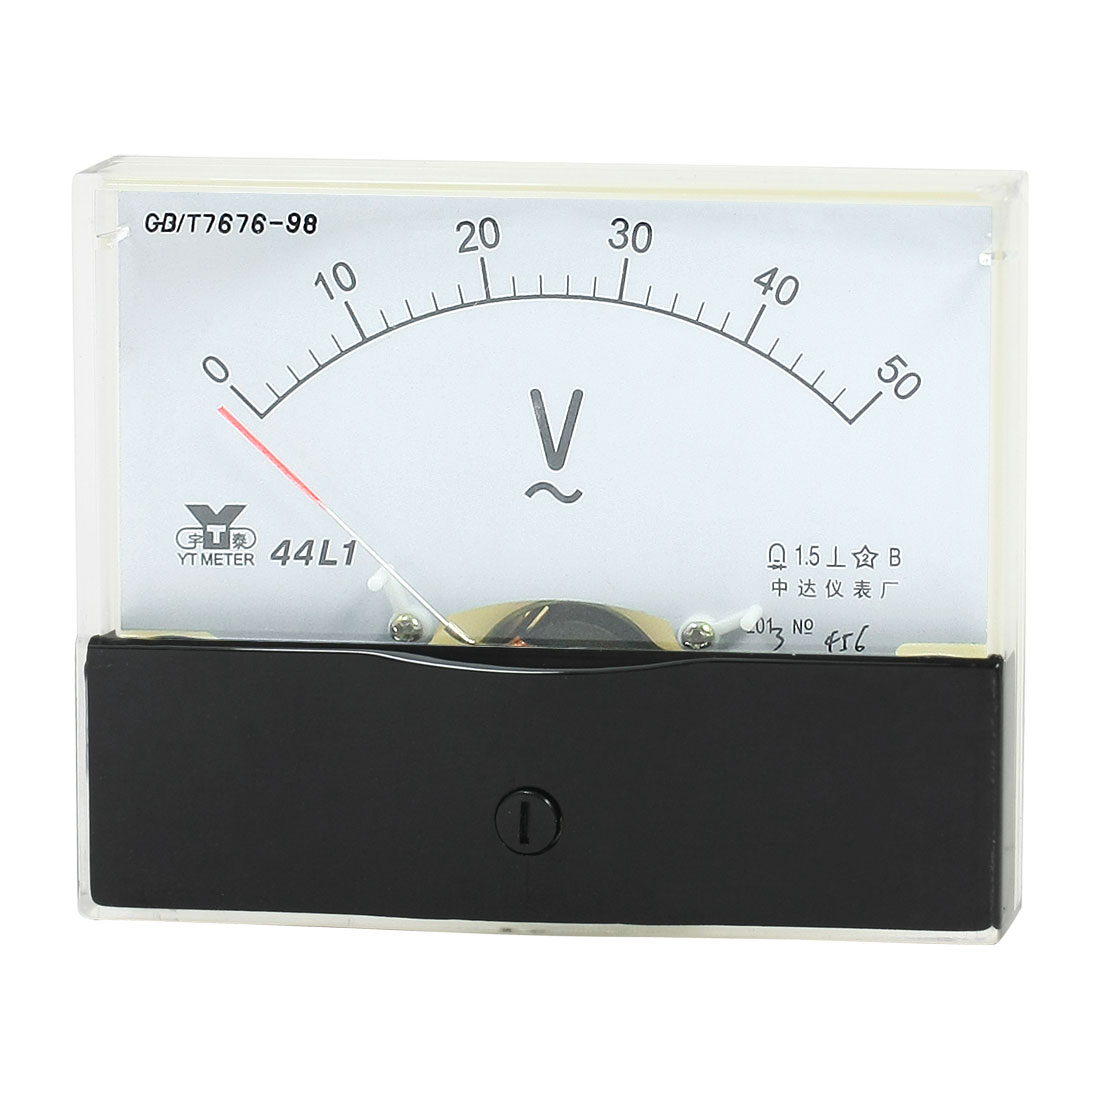 Rectangle Measurement Tool Analog Panel Voltmeter Volt Meter AC 0 - 50V Measuring Range 44L1